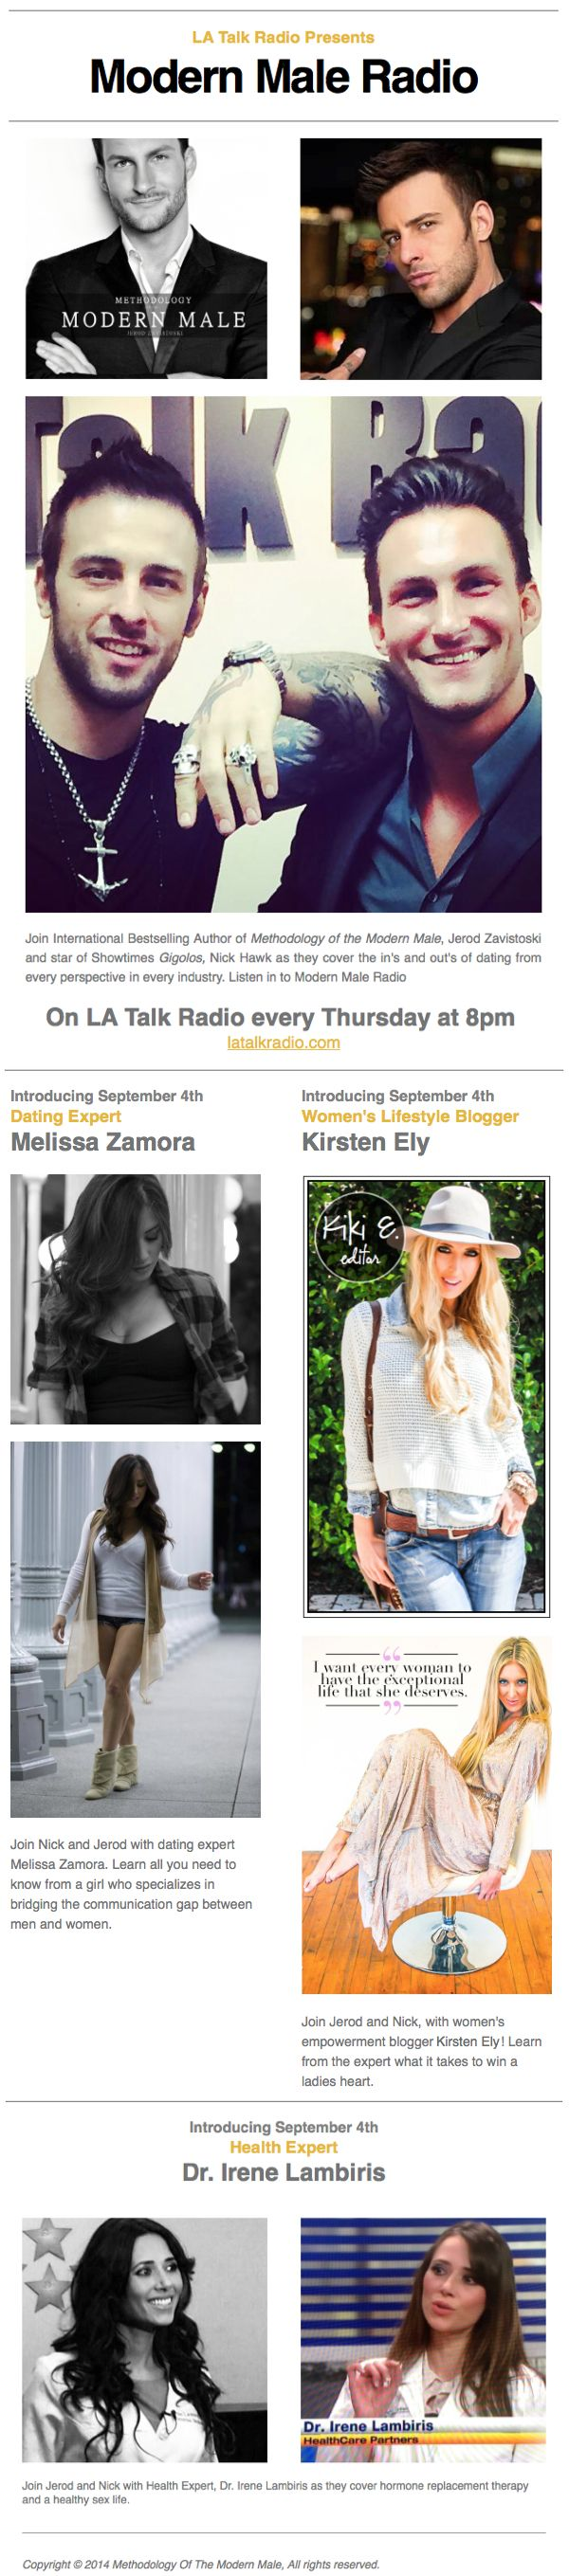 JOIN KIKI E. ON LA TALK RADIO ON 9.4.14 | So excited to represent Blonder Ambitions today on two radio stations! I'll be on KRAZy Country 105.9 at 4pm (a Santa Barbara station) & LA Talk Radio with Jerod Zavistoski & Nick Hawk (www.latalkradio.com) at 8pm... Tune in for opinions and insight on today's dating culture